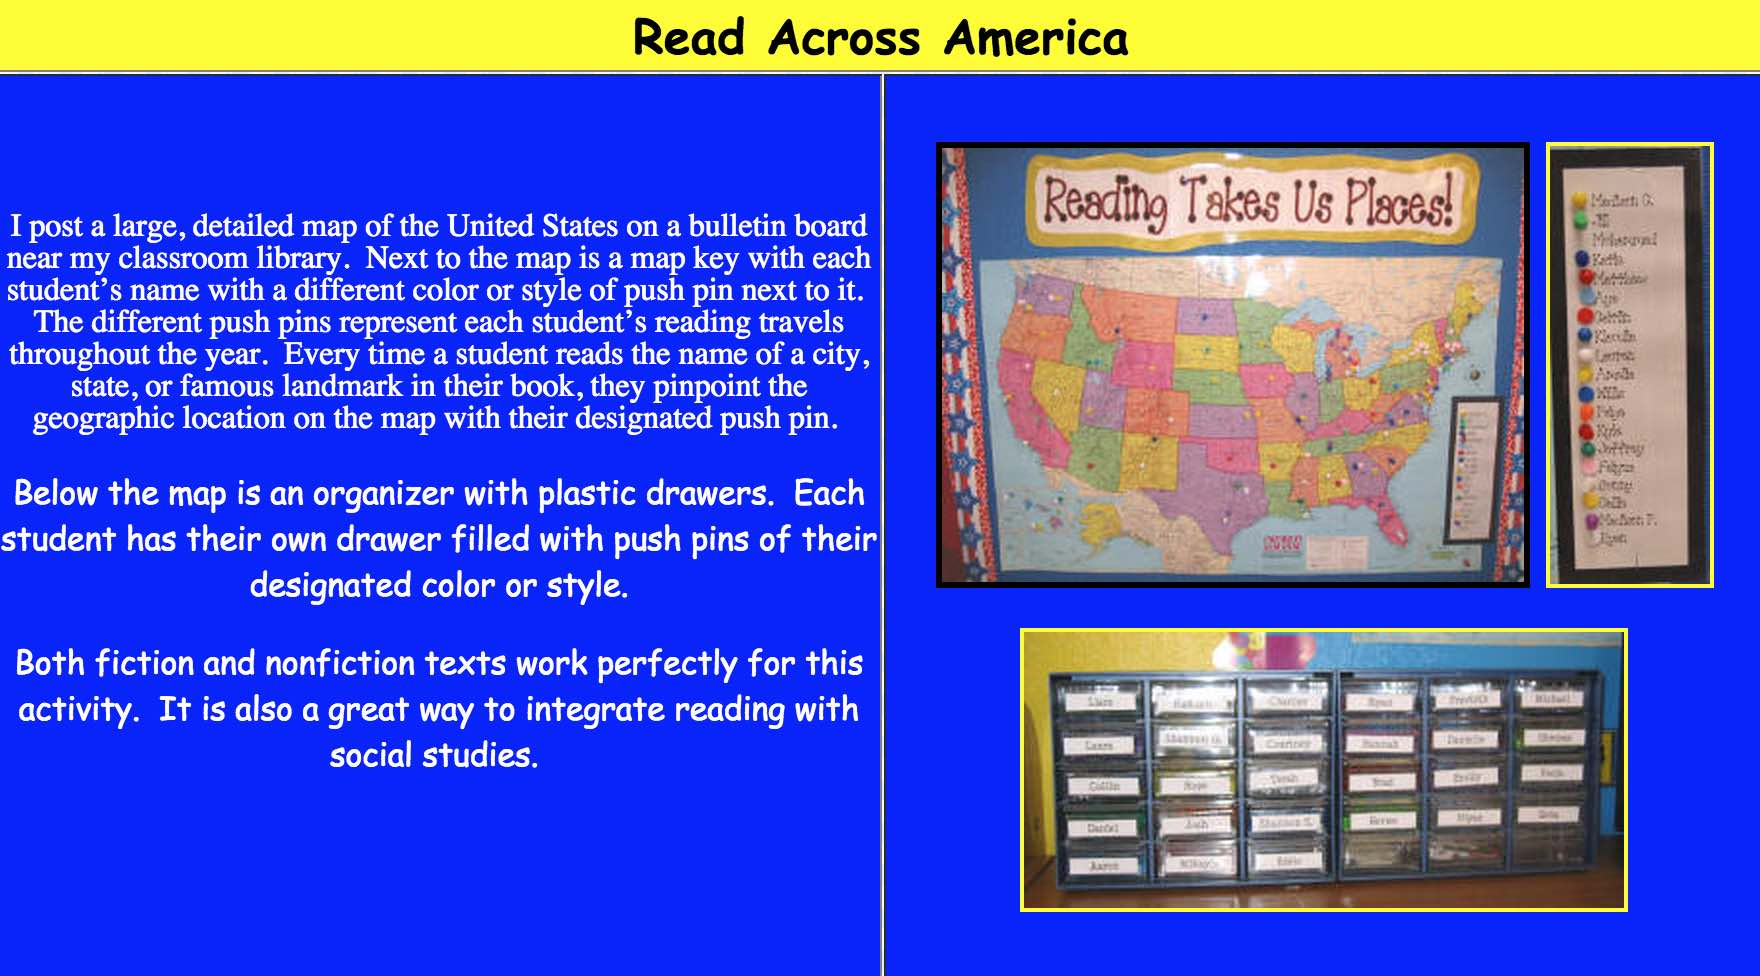 Simply Post A Map Paper Fabric Or Even Digital On Your Interactive White Board And Assign Pins Or Other Such Markers To Each Student And One To The